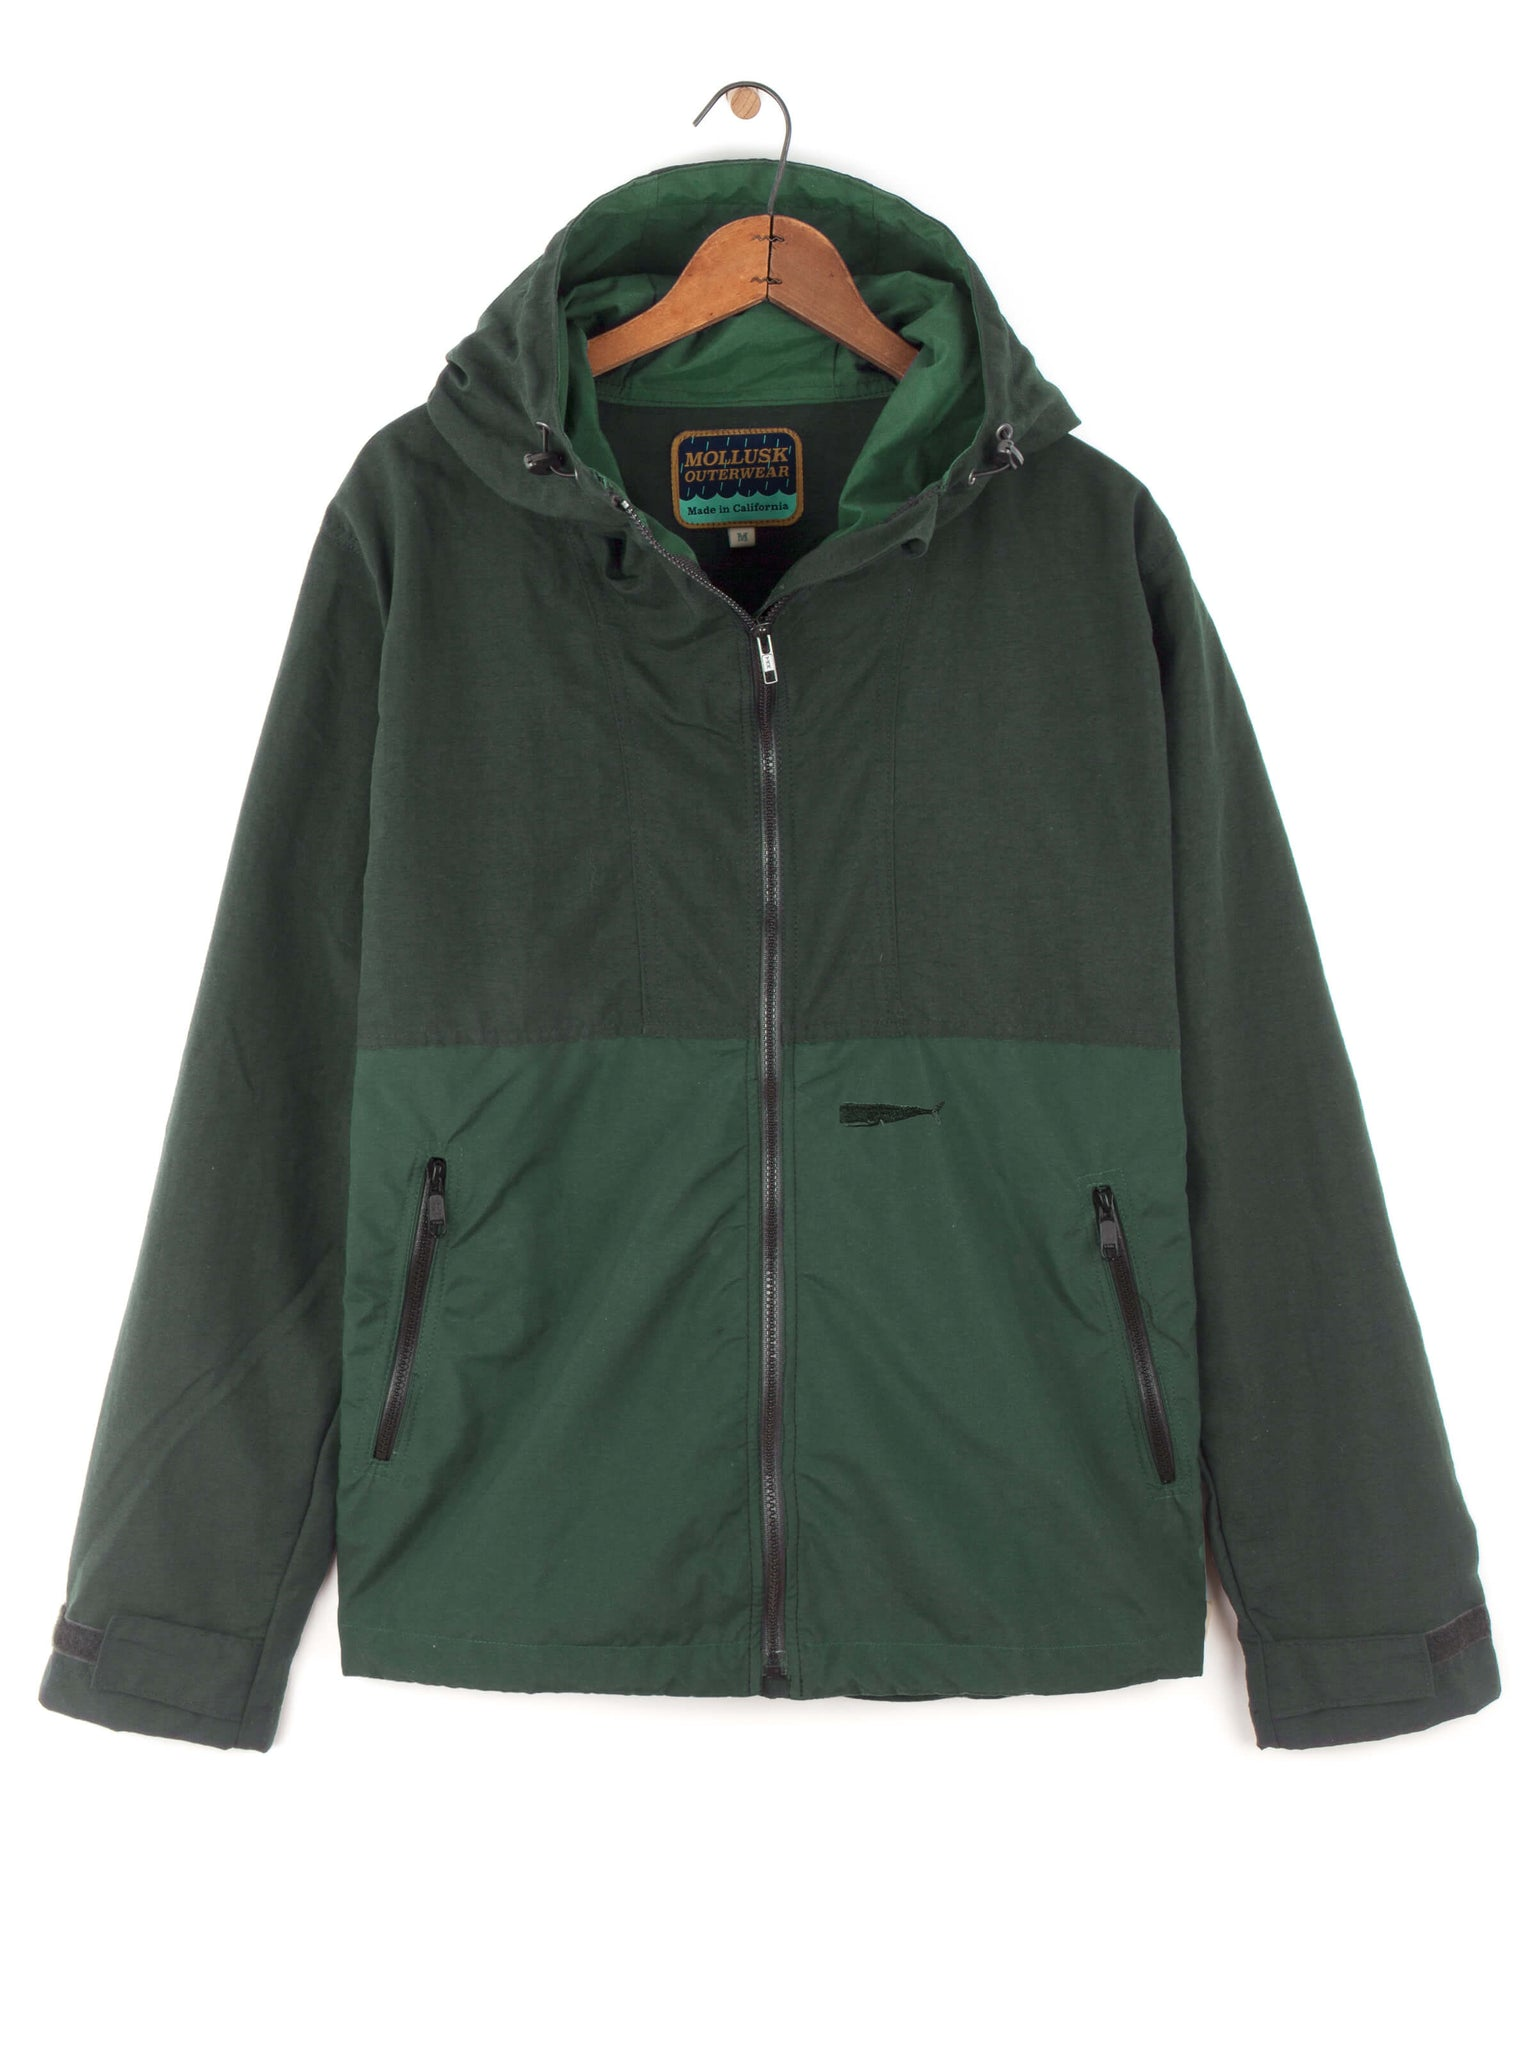 Windjammer Jacket